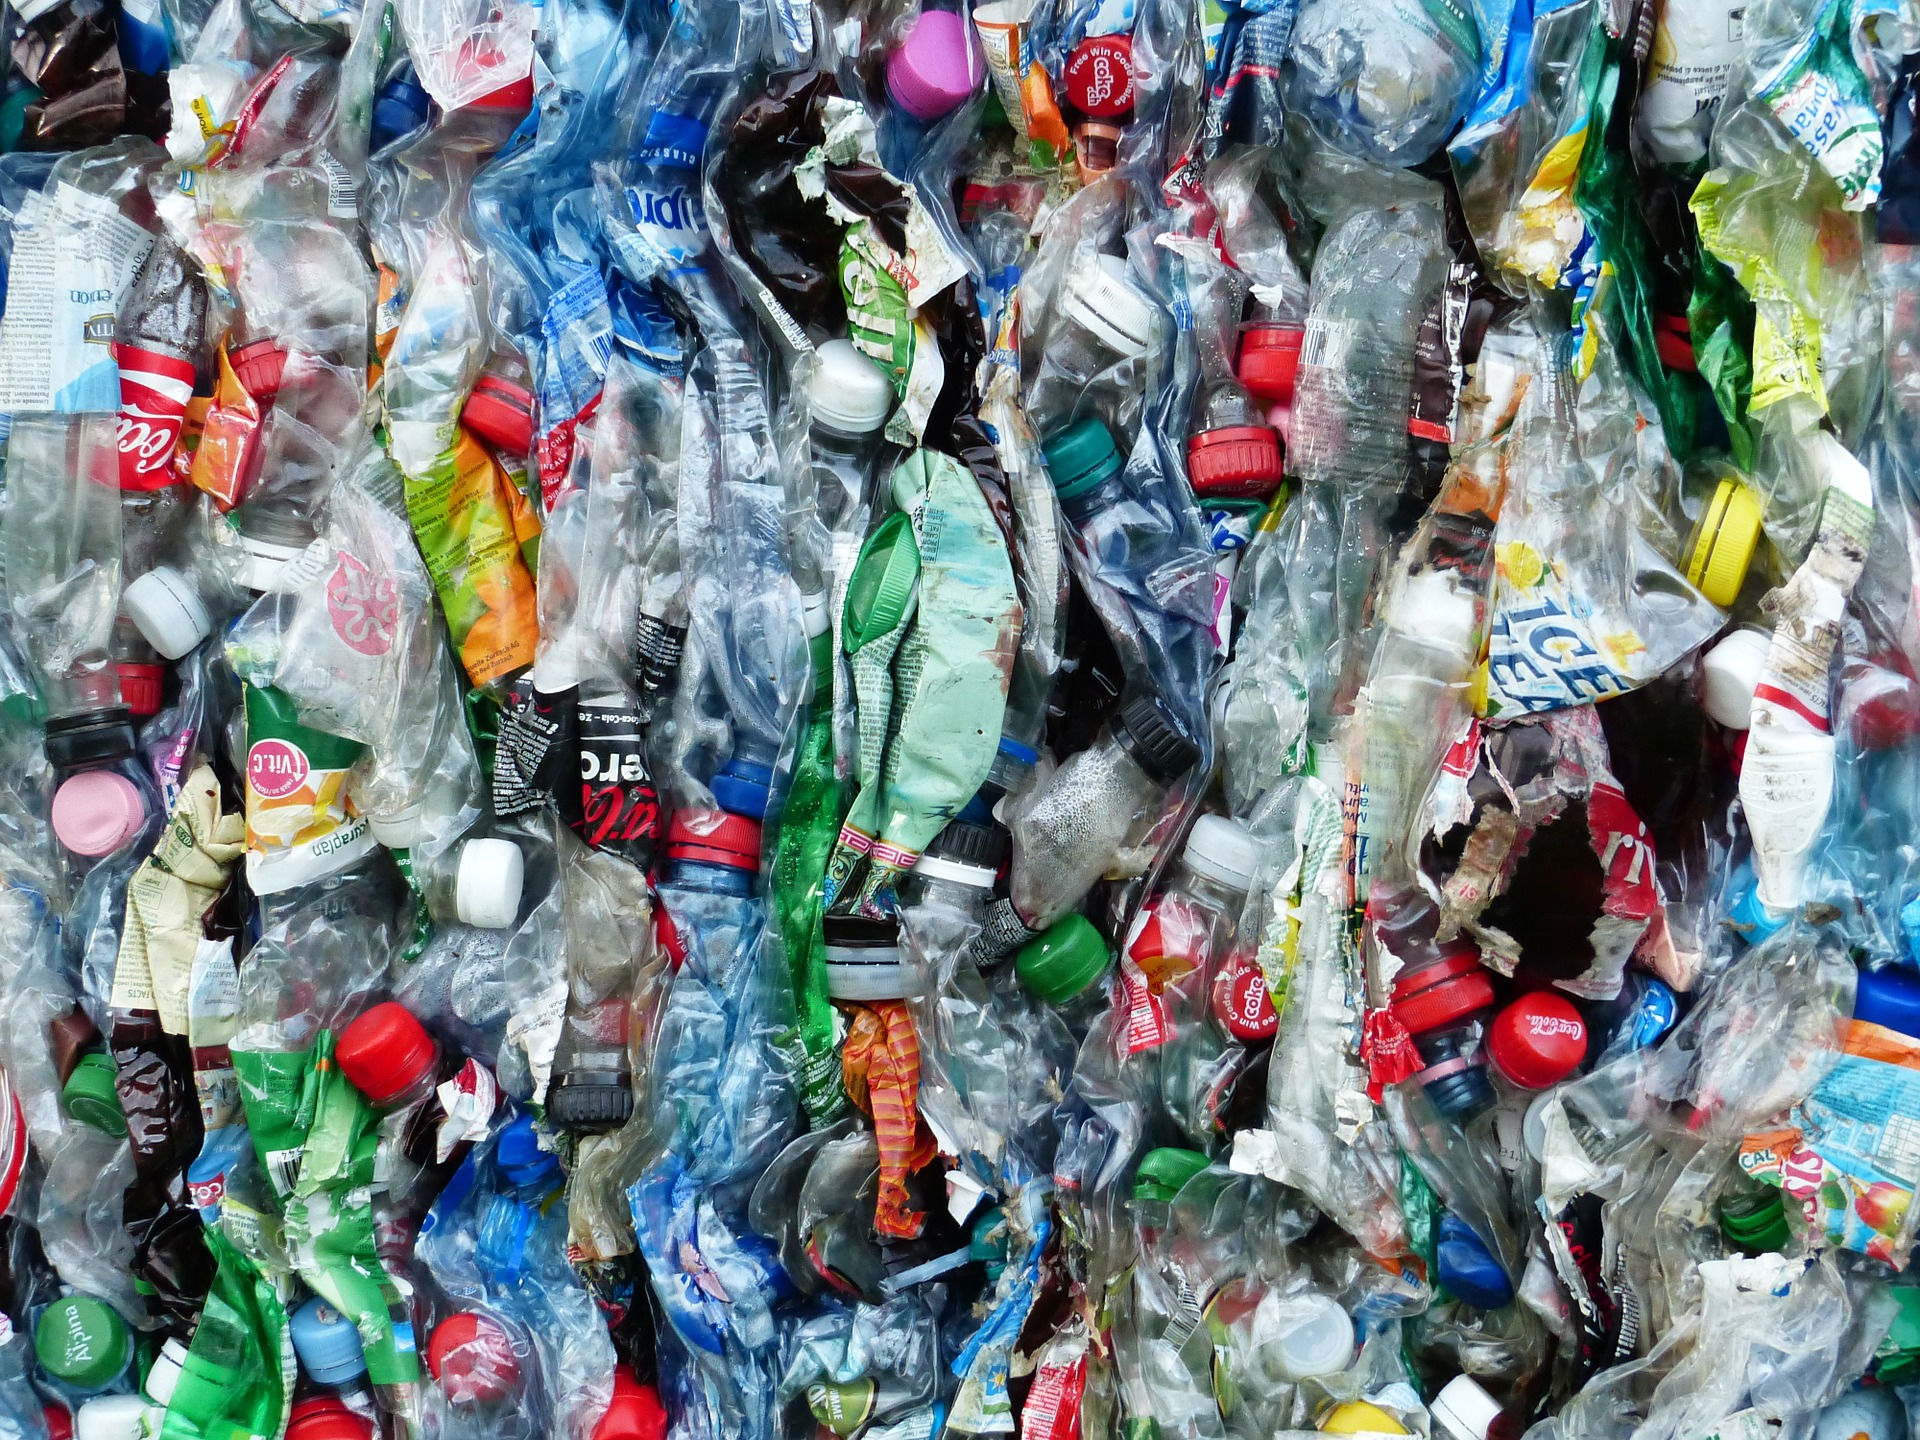 Say no to single use plastic - Use a refillable water bottle instead of bottled water and take your own re-usable bag to the shops. Remember we're social beings… those that look up to you will copy you.